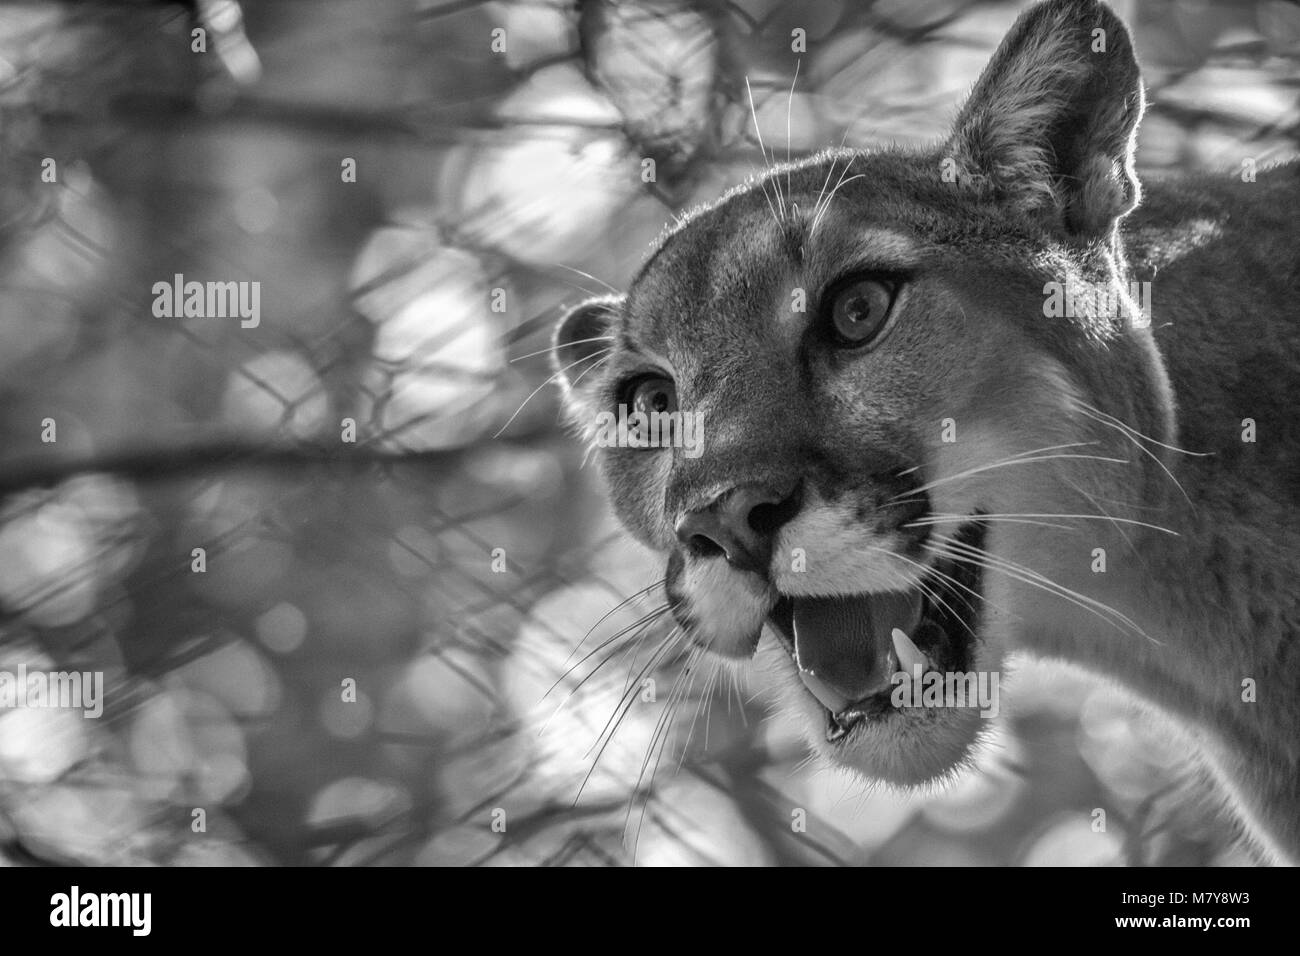 Close-up of a cougar (Puma concolor) against a backdrop of leaves and fence, at the Western North Carolina Nature - Stock Image